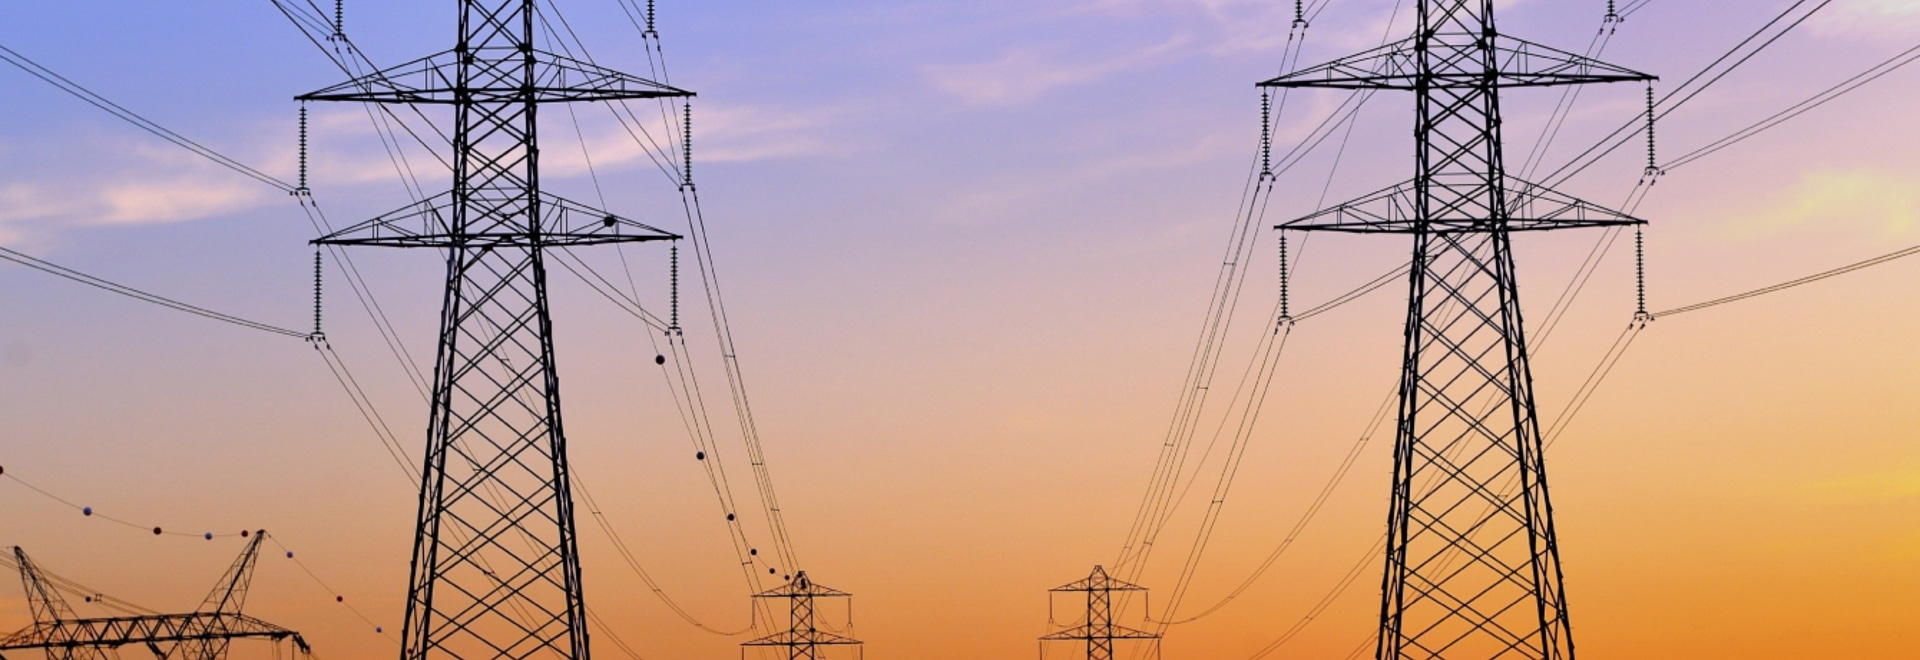 New Standard for Power Industry Will Be Approved and Implemented